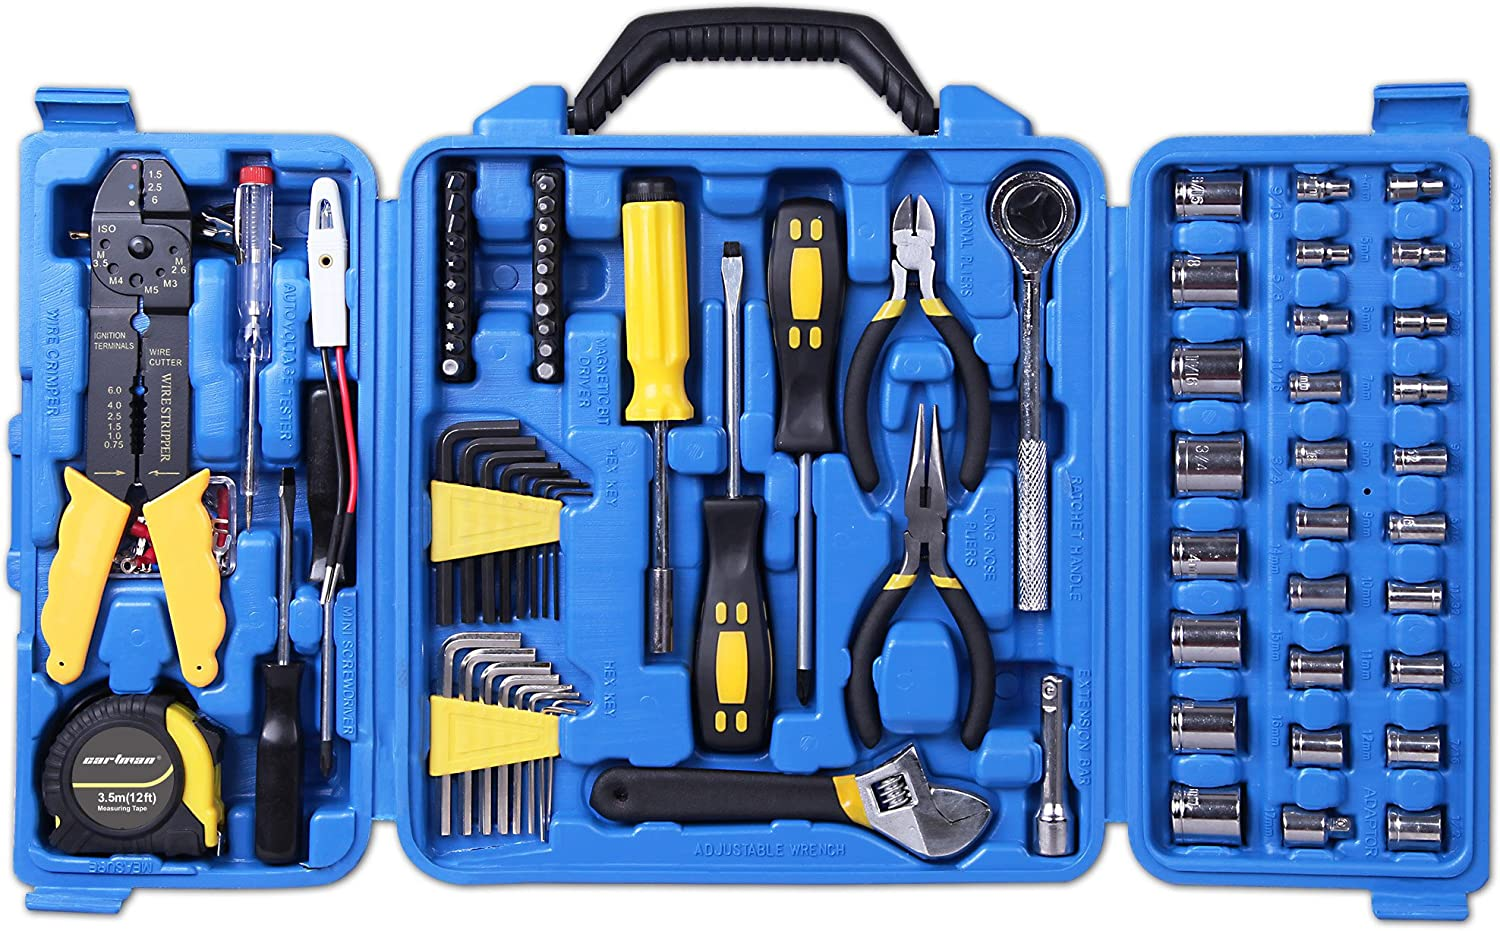 Drive Socket Set Tool Kit Set CARTMAN 122pcs Auto Tool Accessory Set Electric Tool Set